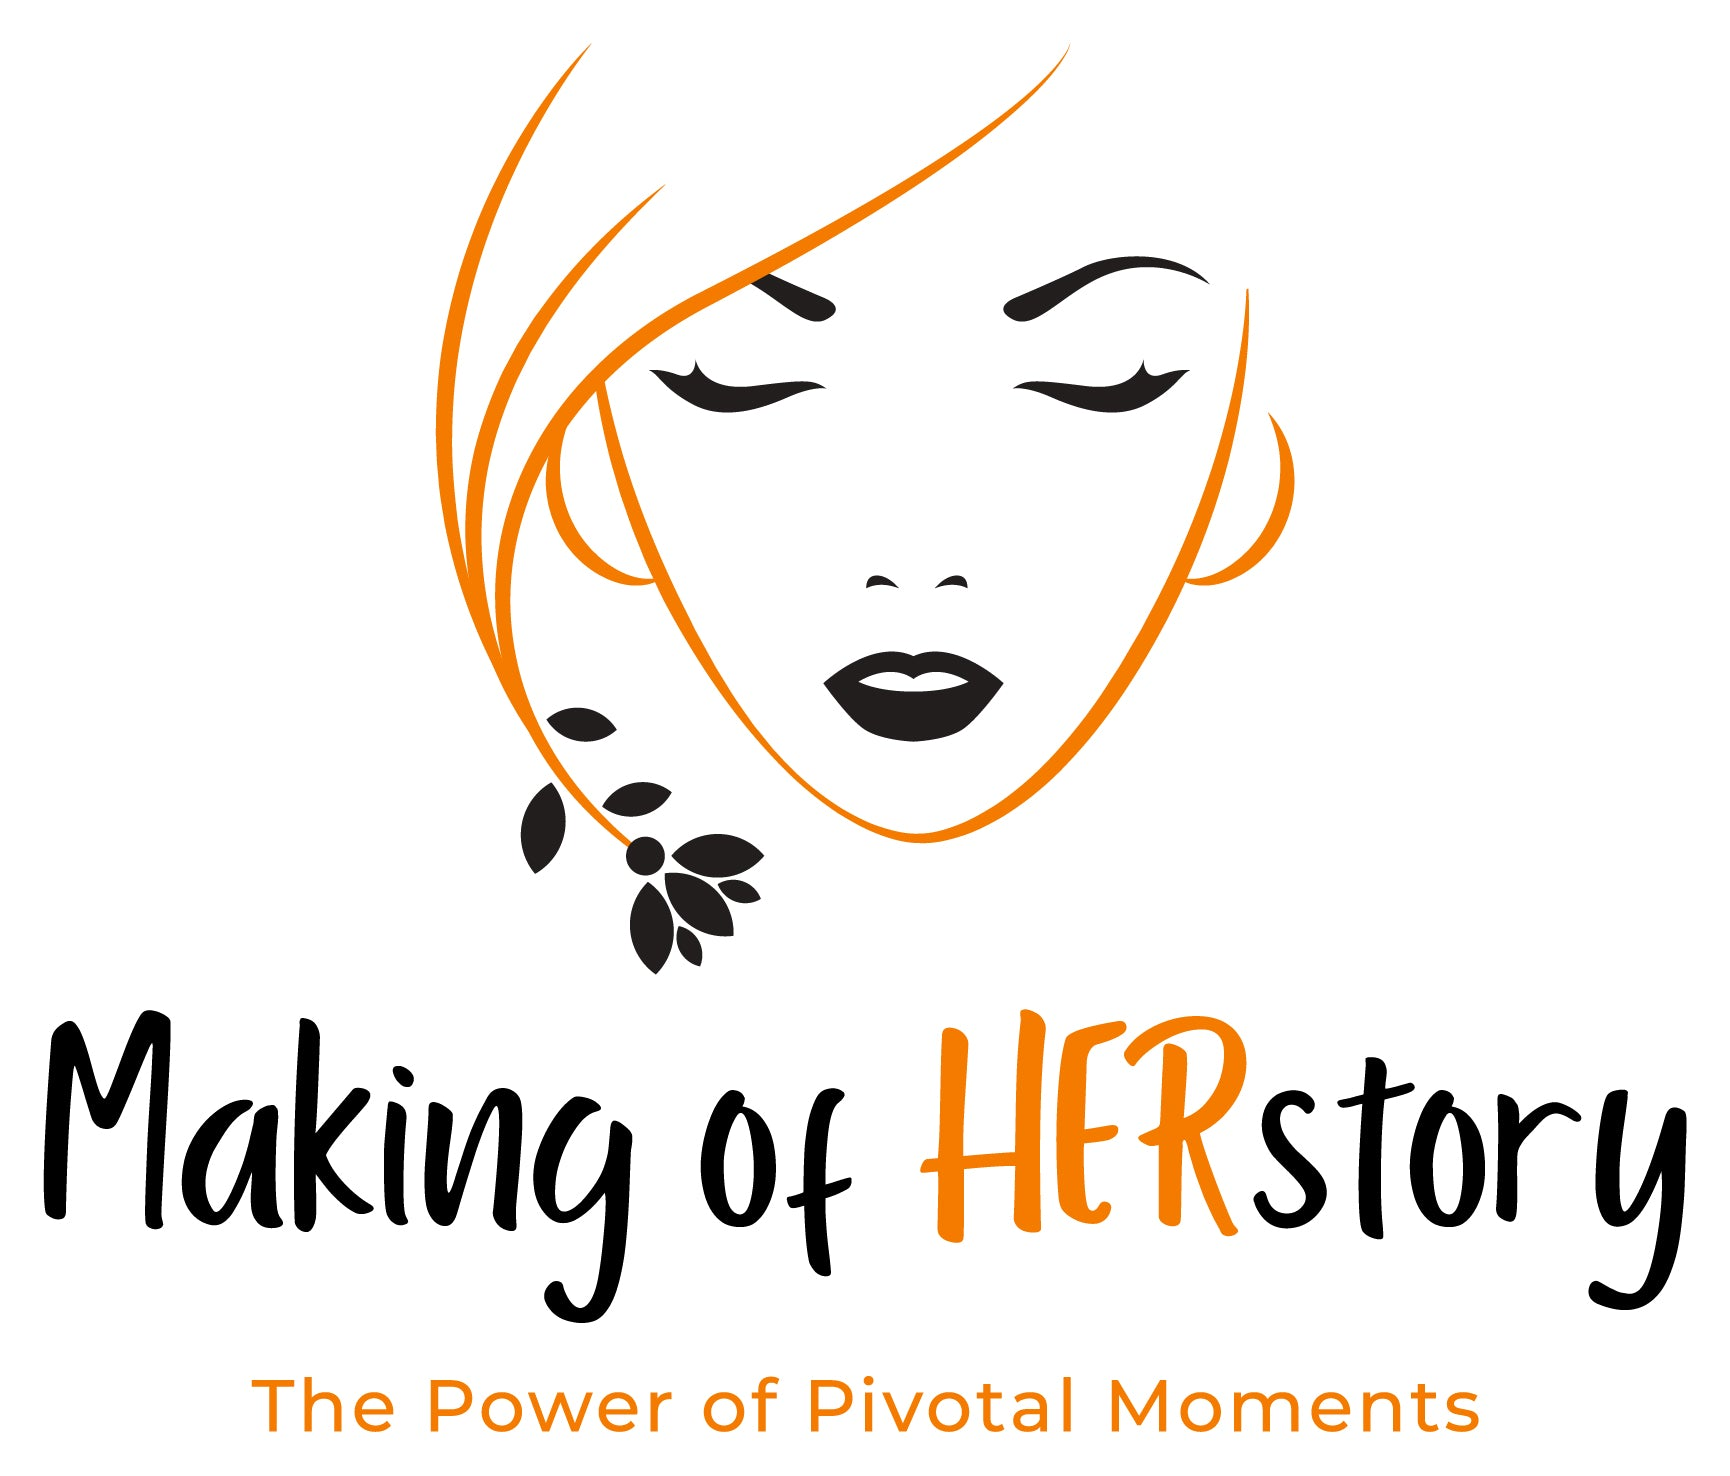 The Making of HerStory Podcast